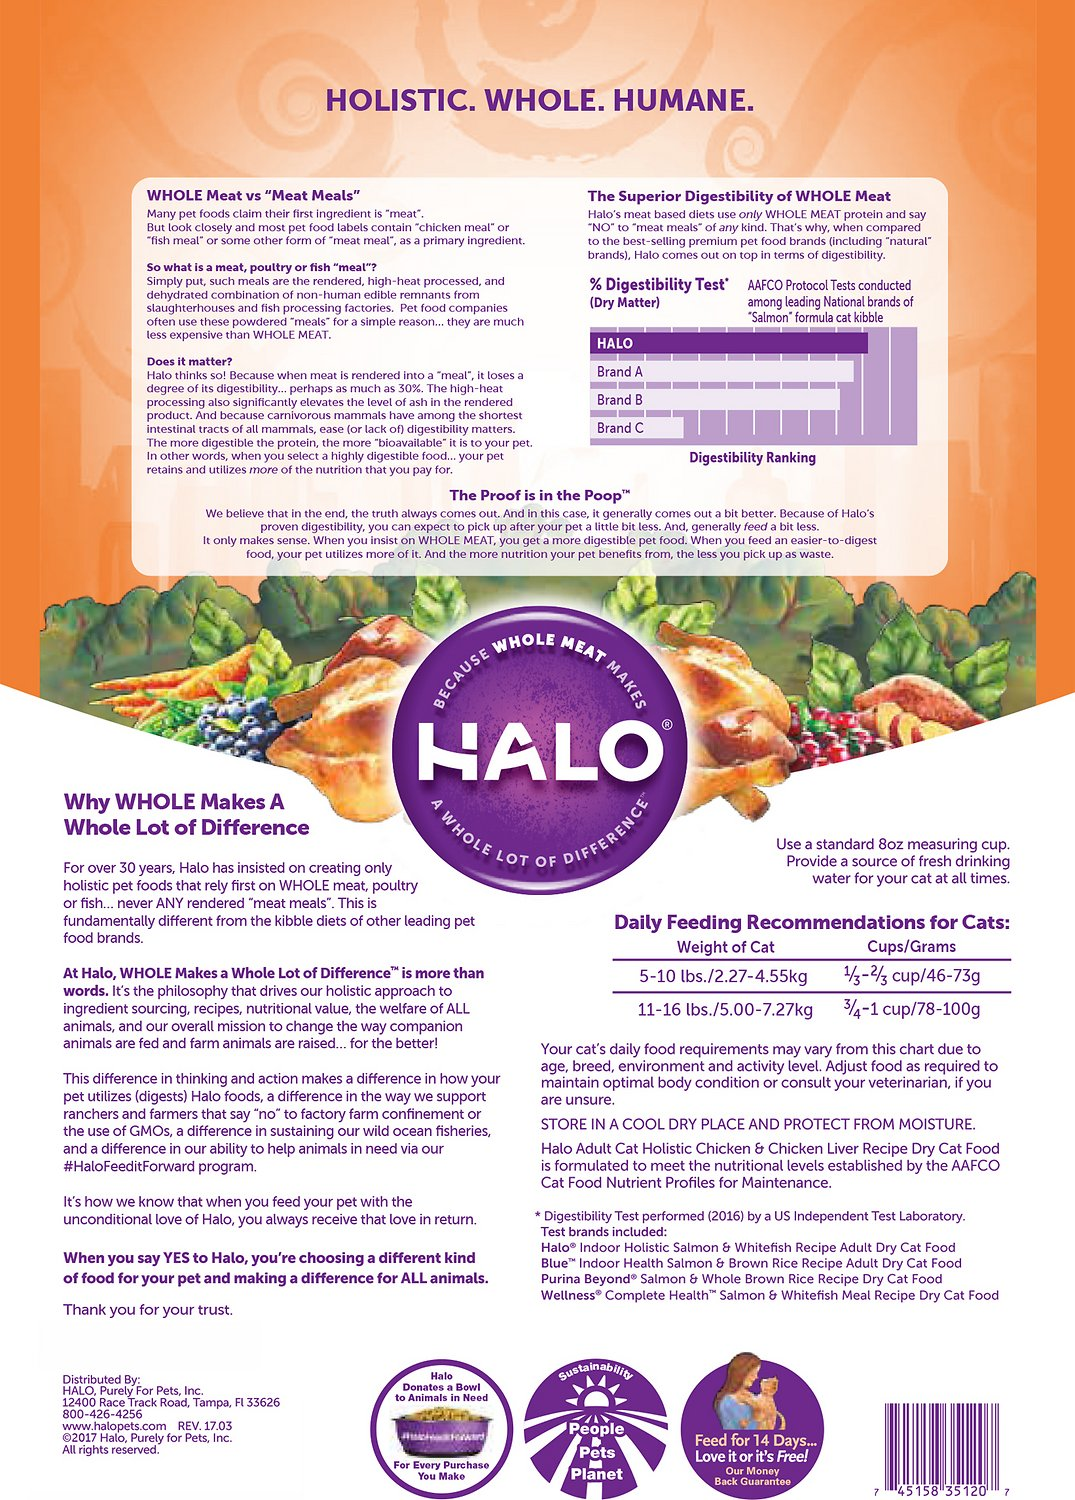 Halo holistic chicken chicken liver recipe adult dry cat food video forumfinder Images